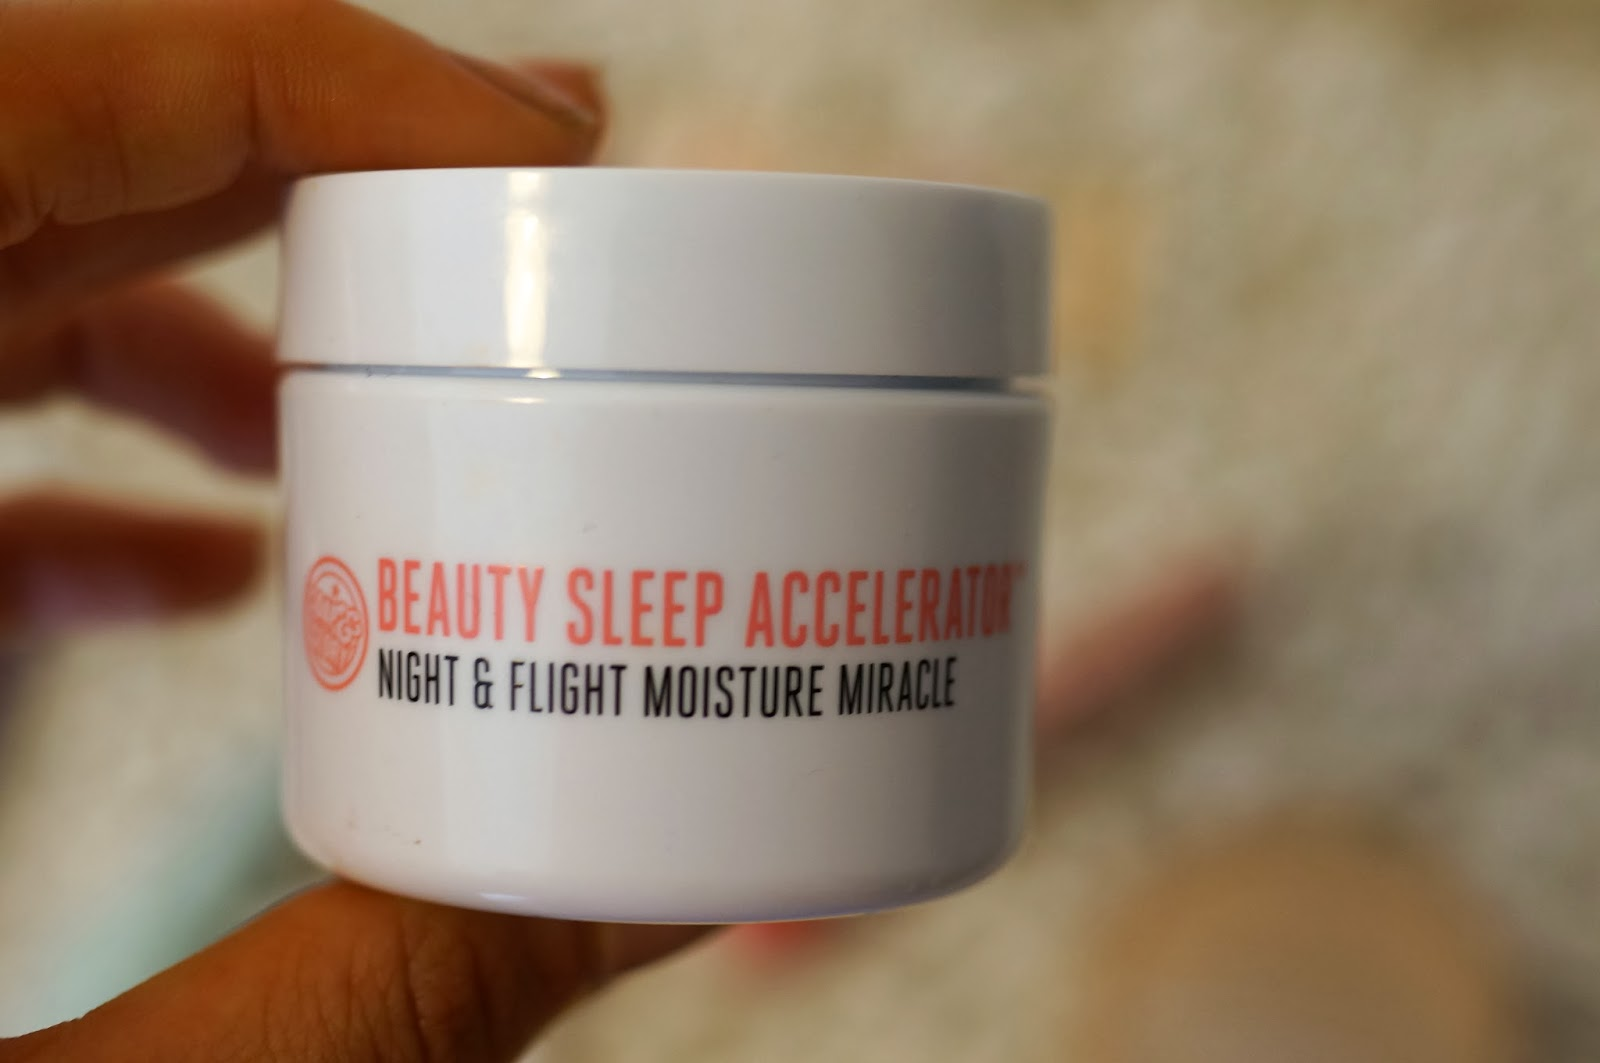 Beauty Sleep Accelerator - Night and Flight Moisture Miracle by Soap and Glory